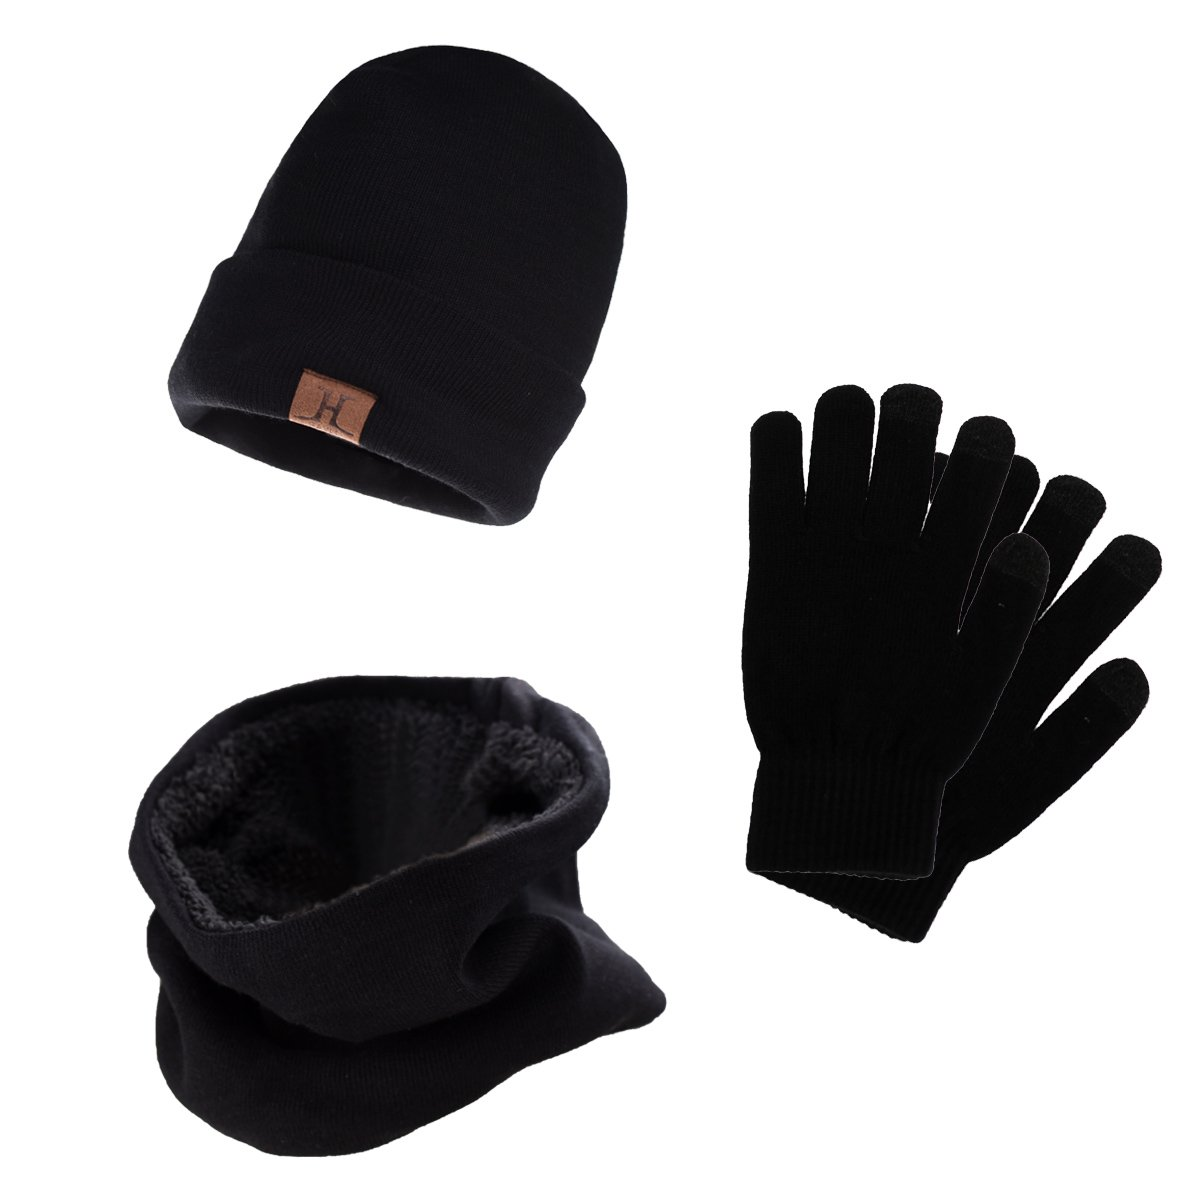 Mens Black Thermal Thinsulate Winter Hat and /'Handy/' Thermal Gloves Set